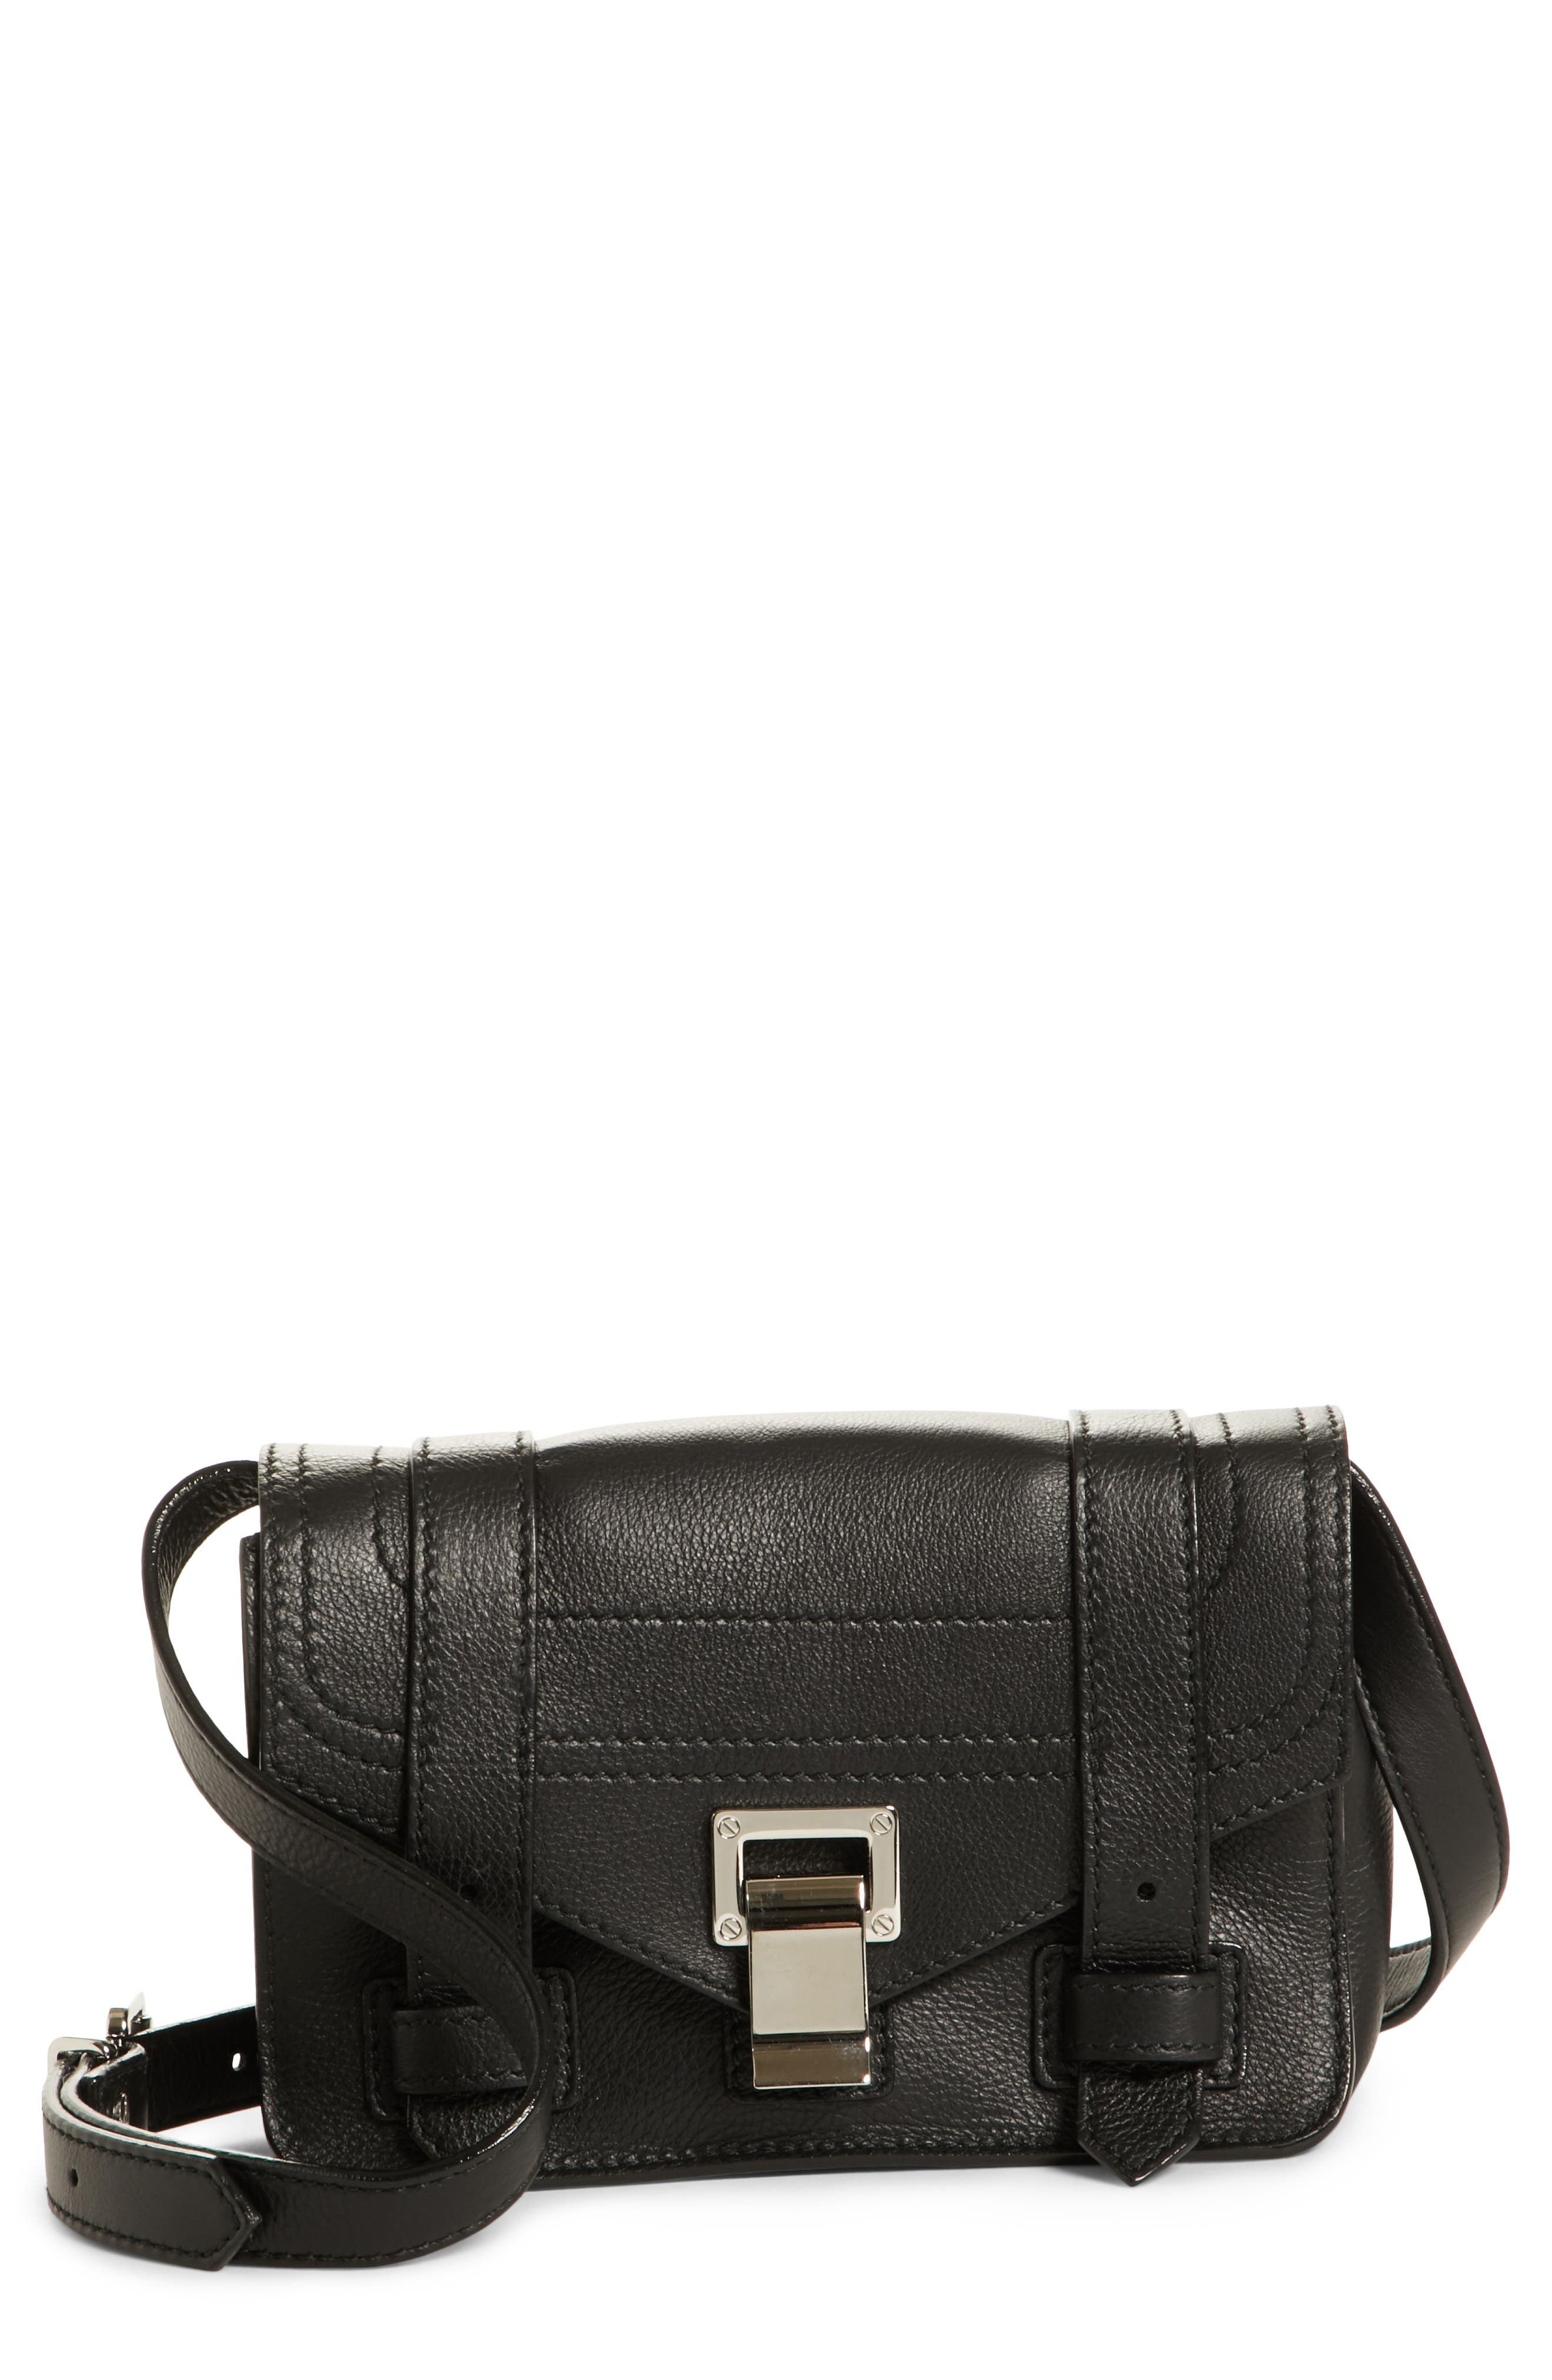 PROENZA SCHOULER, Mini PS1 Leather Crossbody Bag, Main thumbnail 1, color, BLACK